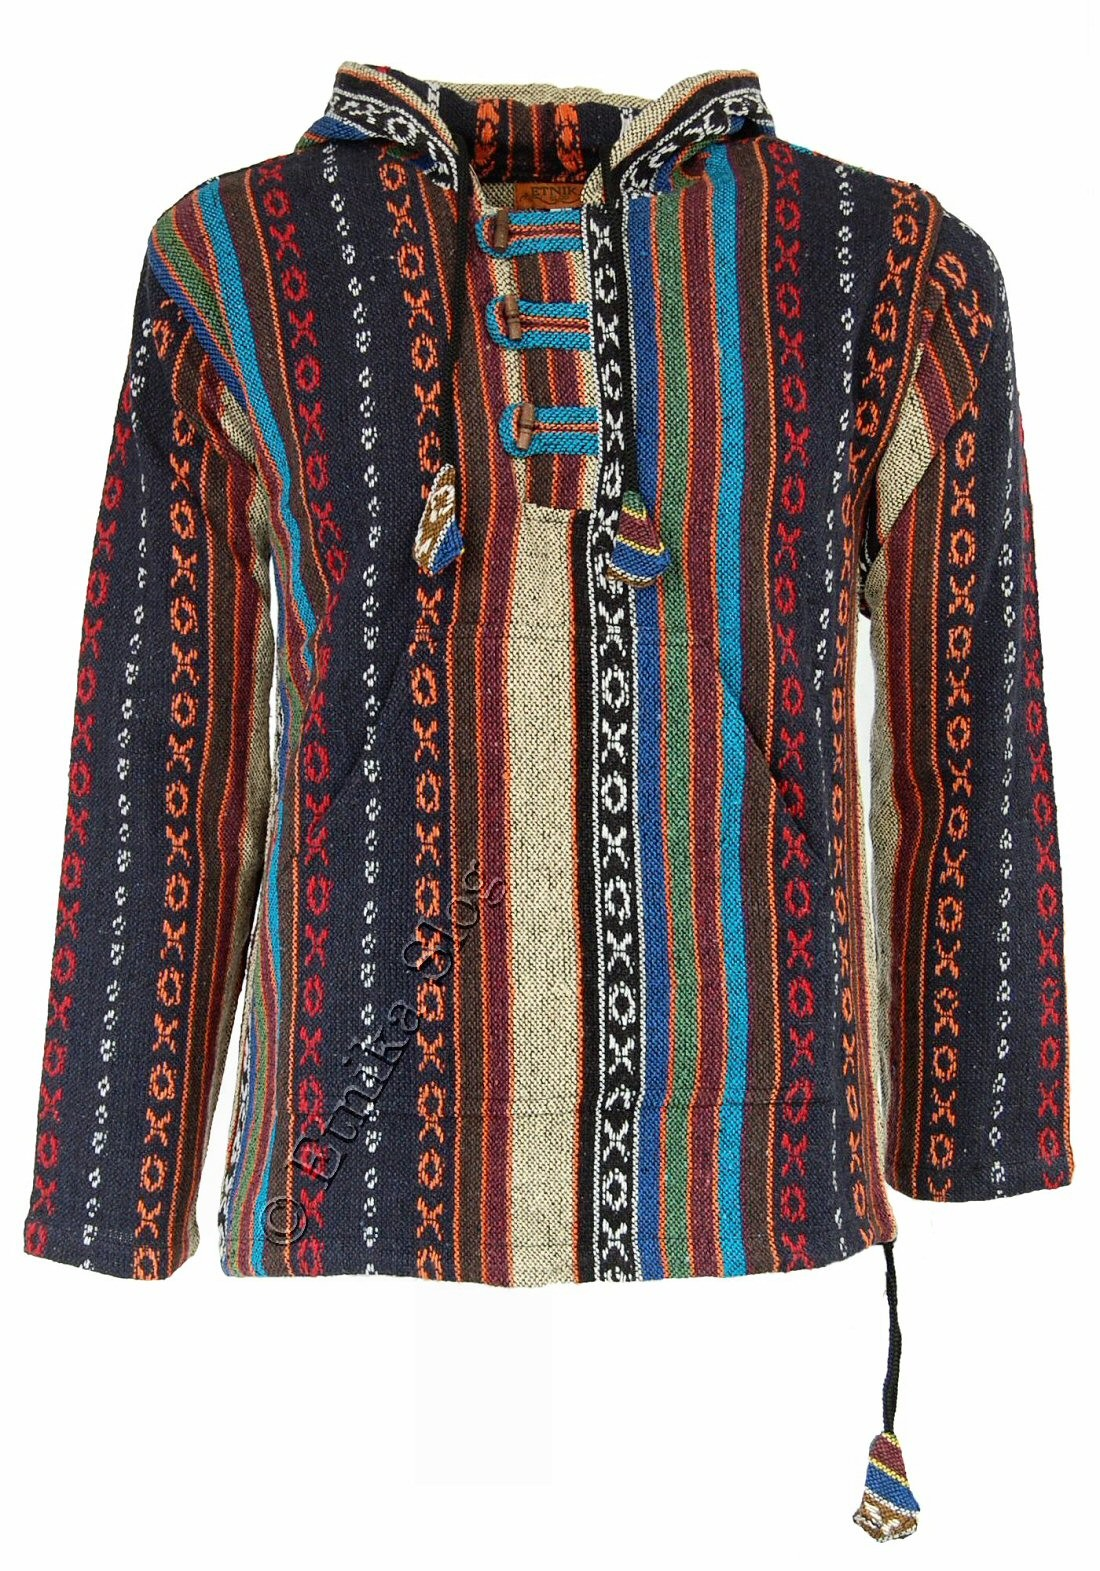 SHIRTS AND HOODIES AB-AJJ04 - Oriente Import S.r.l.